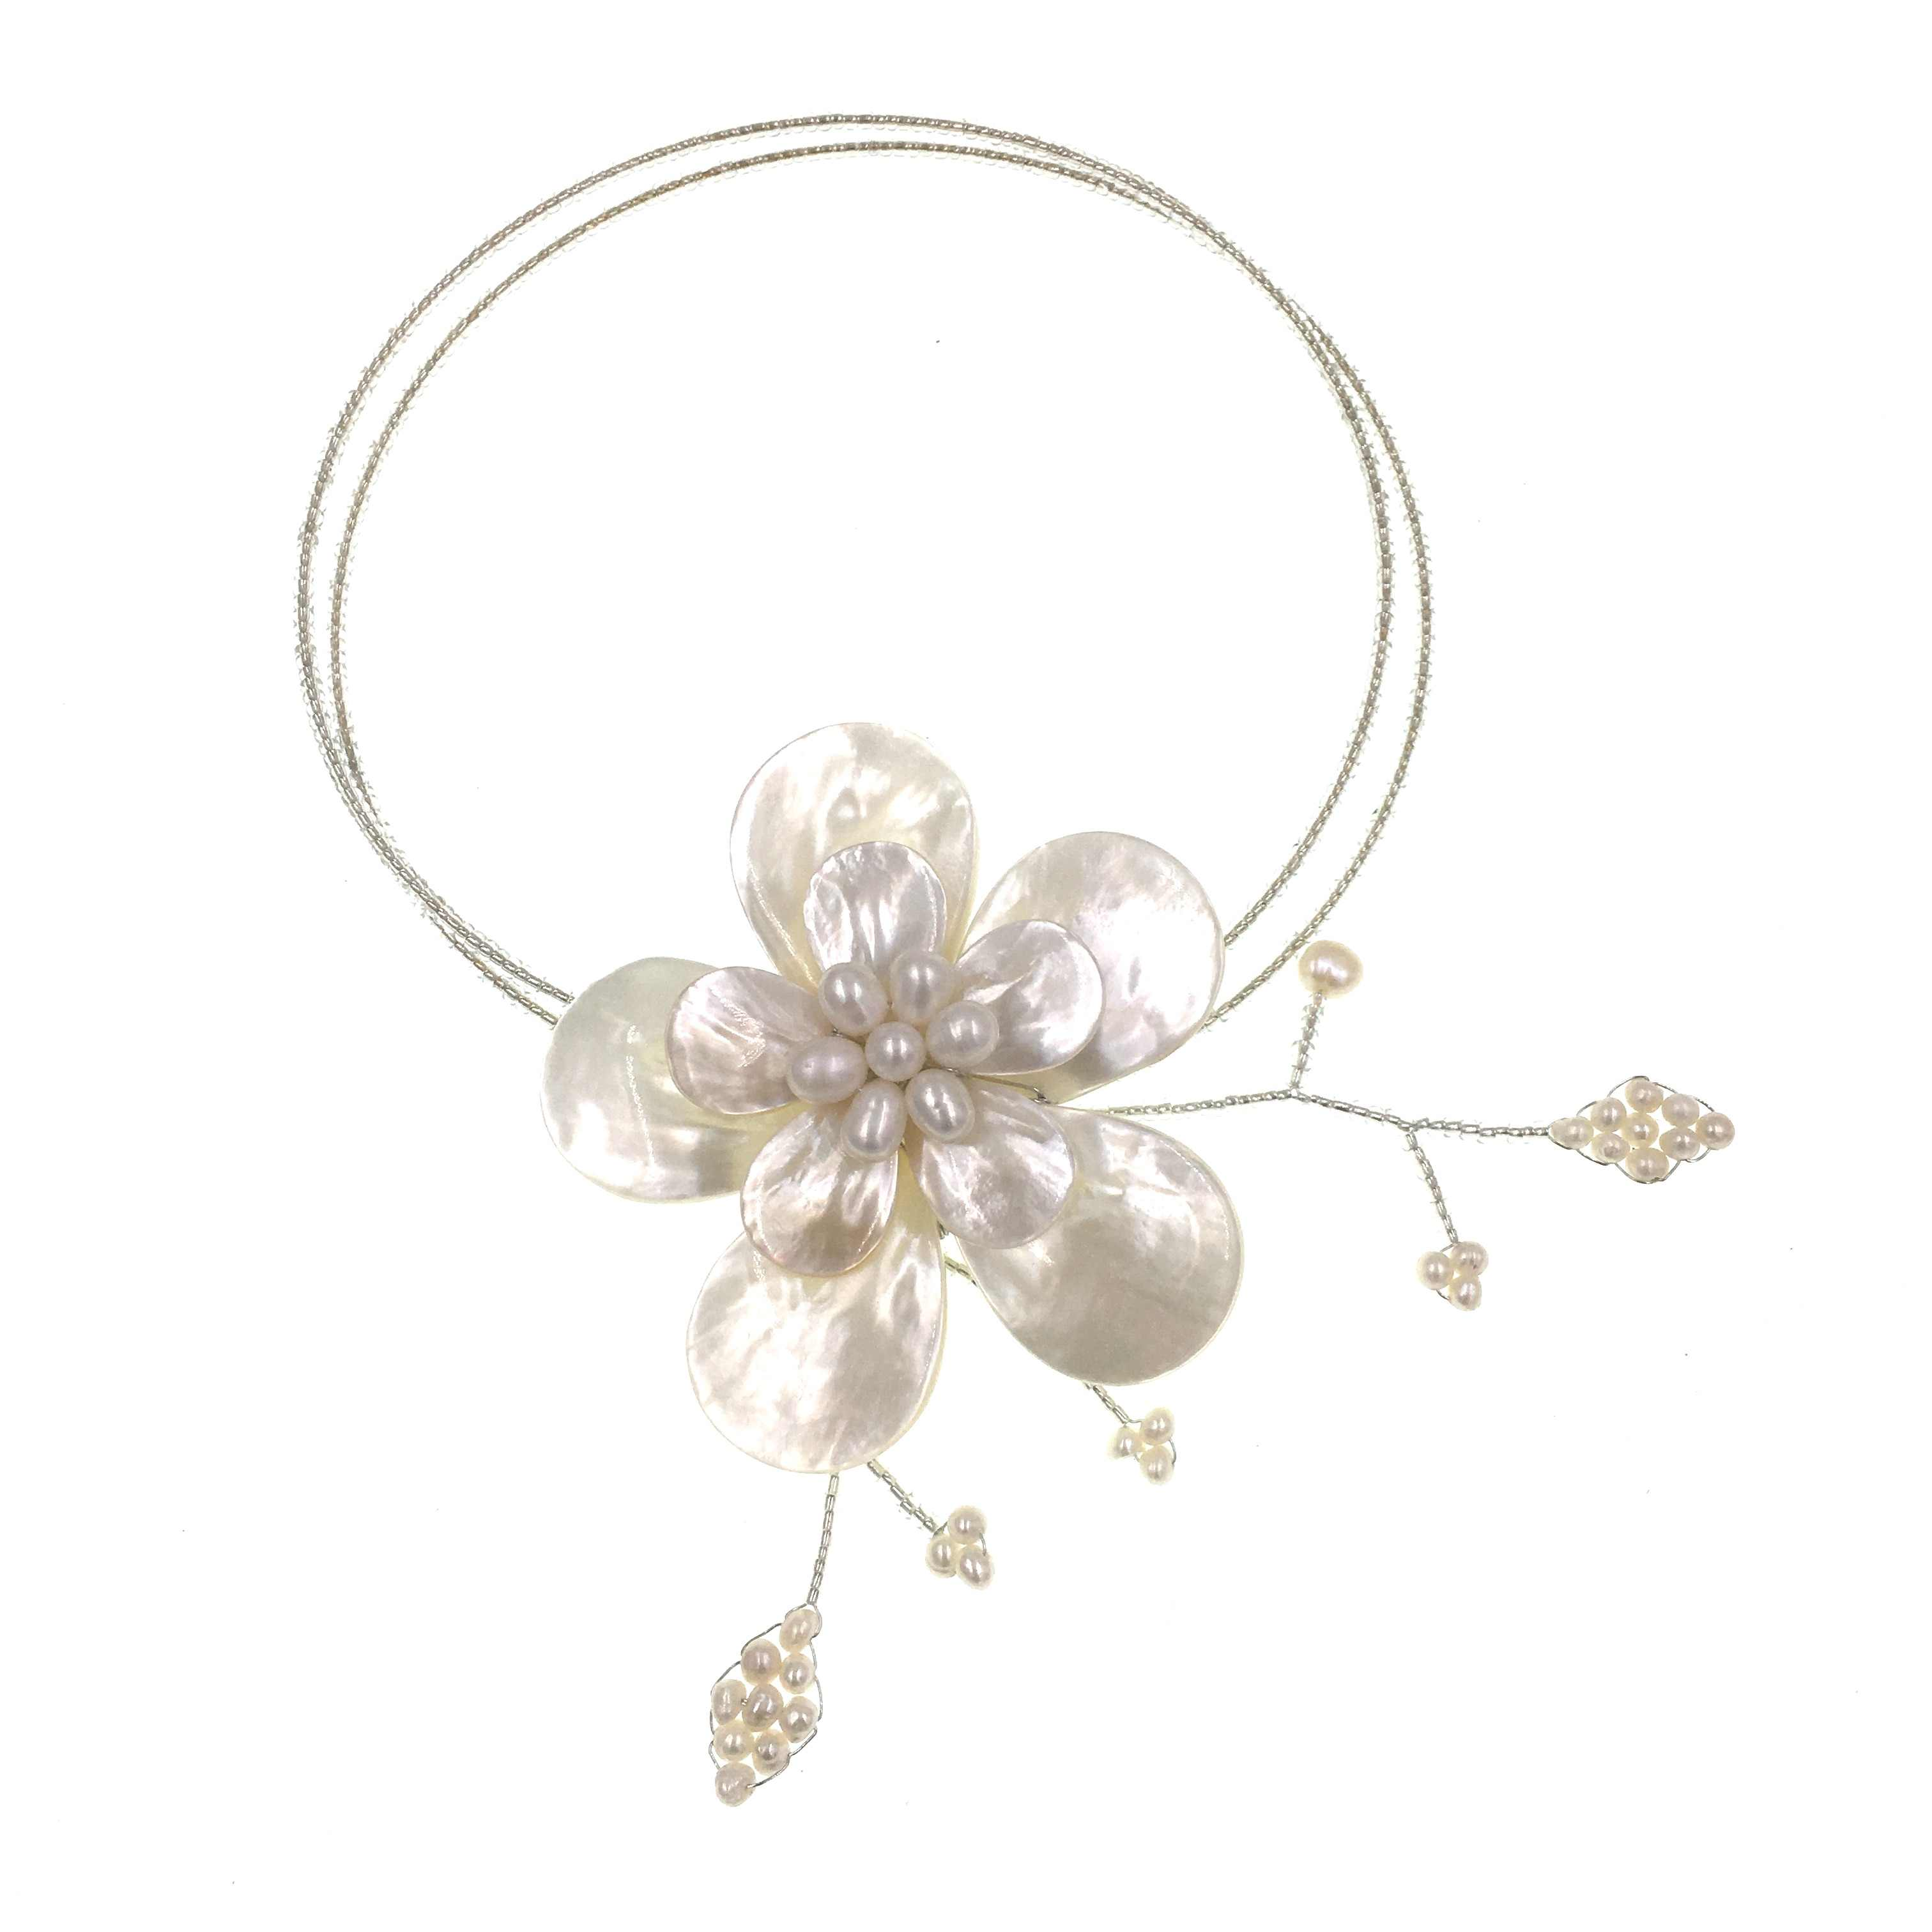 2019 New Trendy Retro Ethnic White Sea Shell Flower Seed Bead Choker Necklace Bijoux Femme Ladies Party Necklace